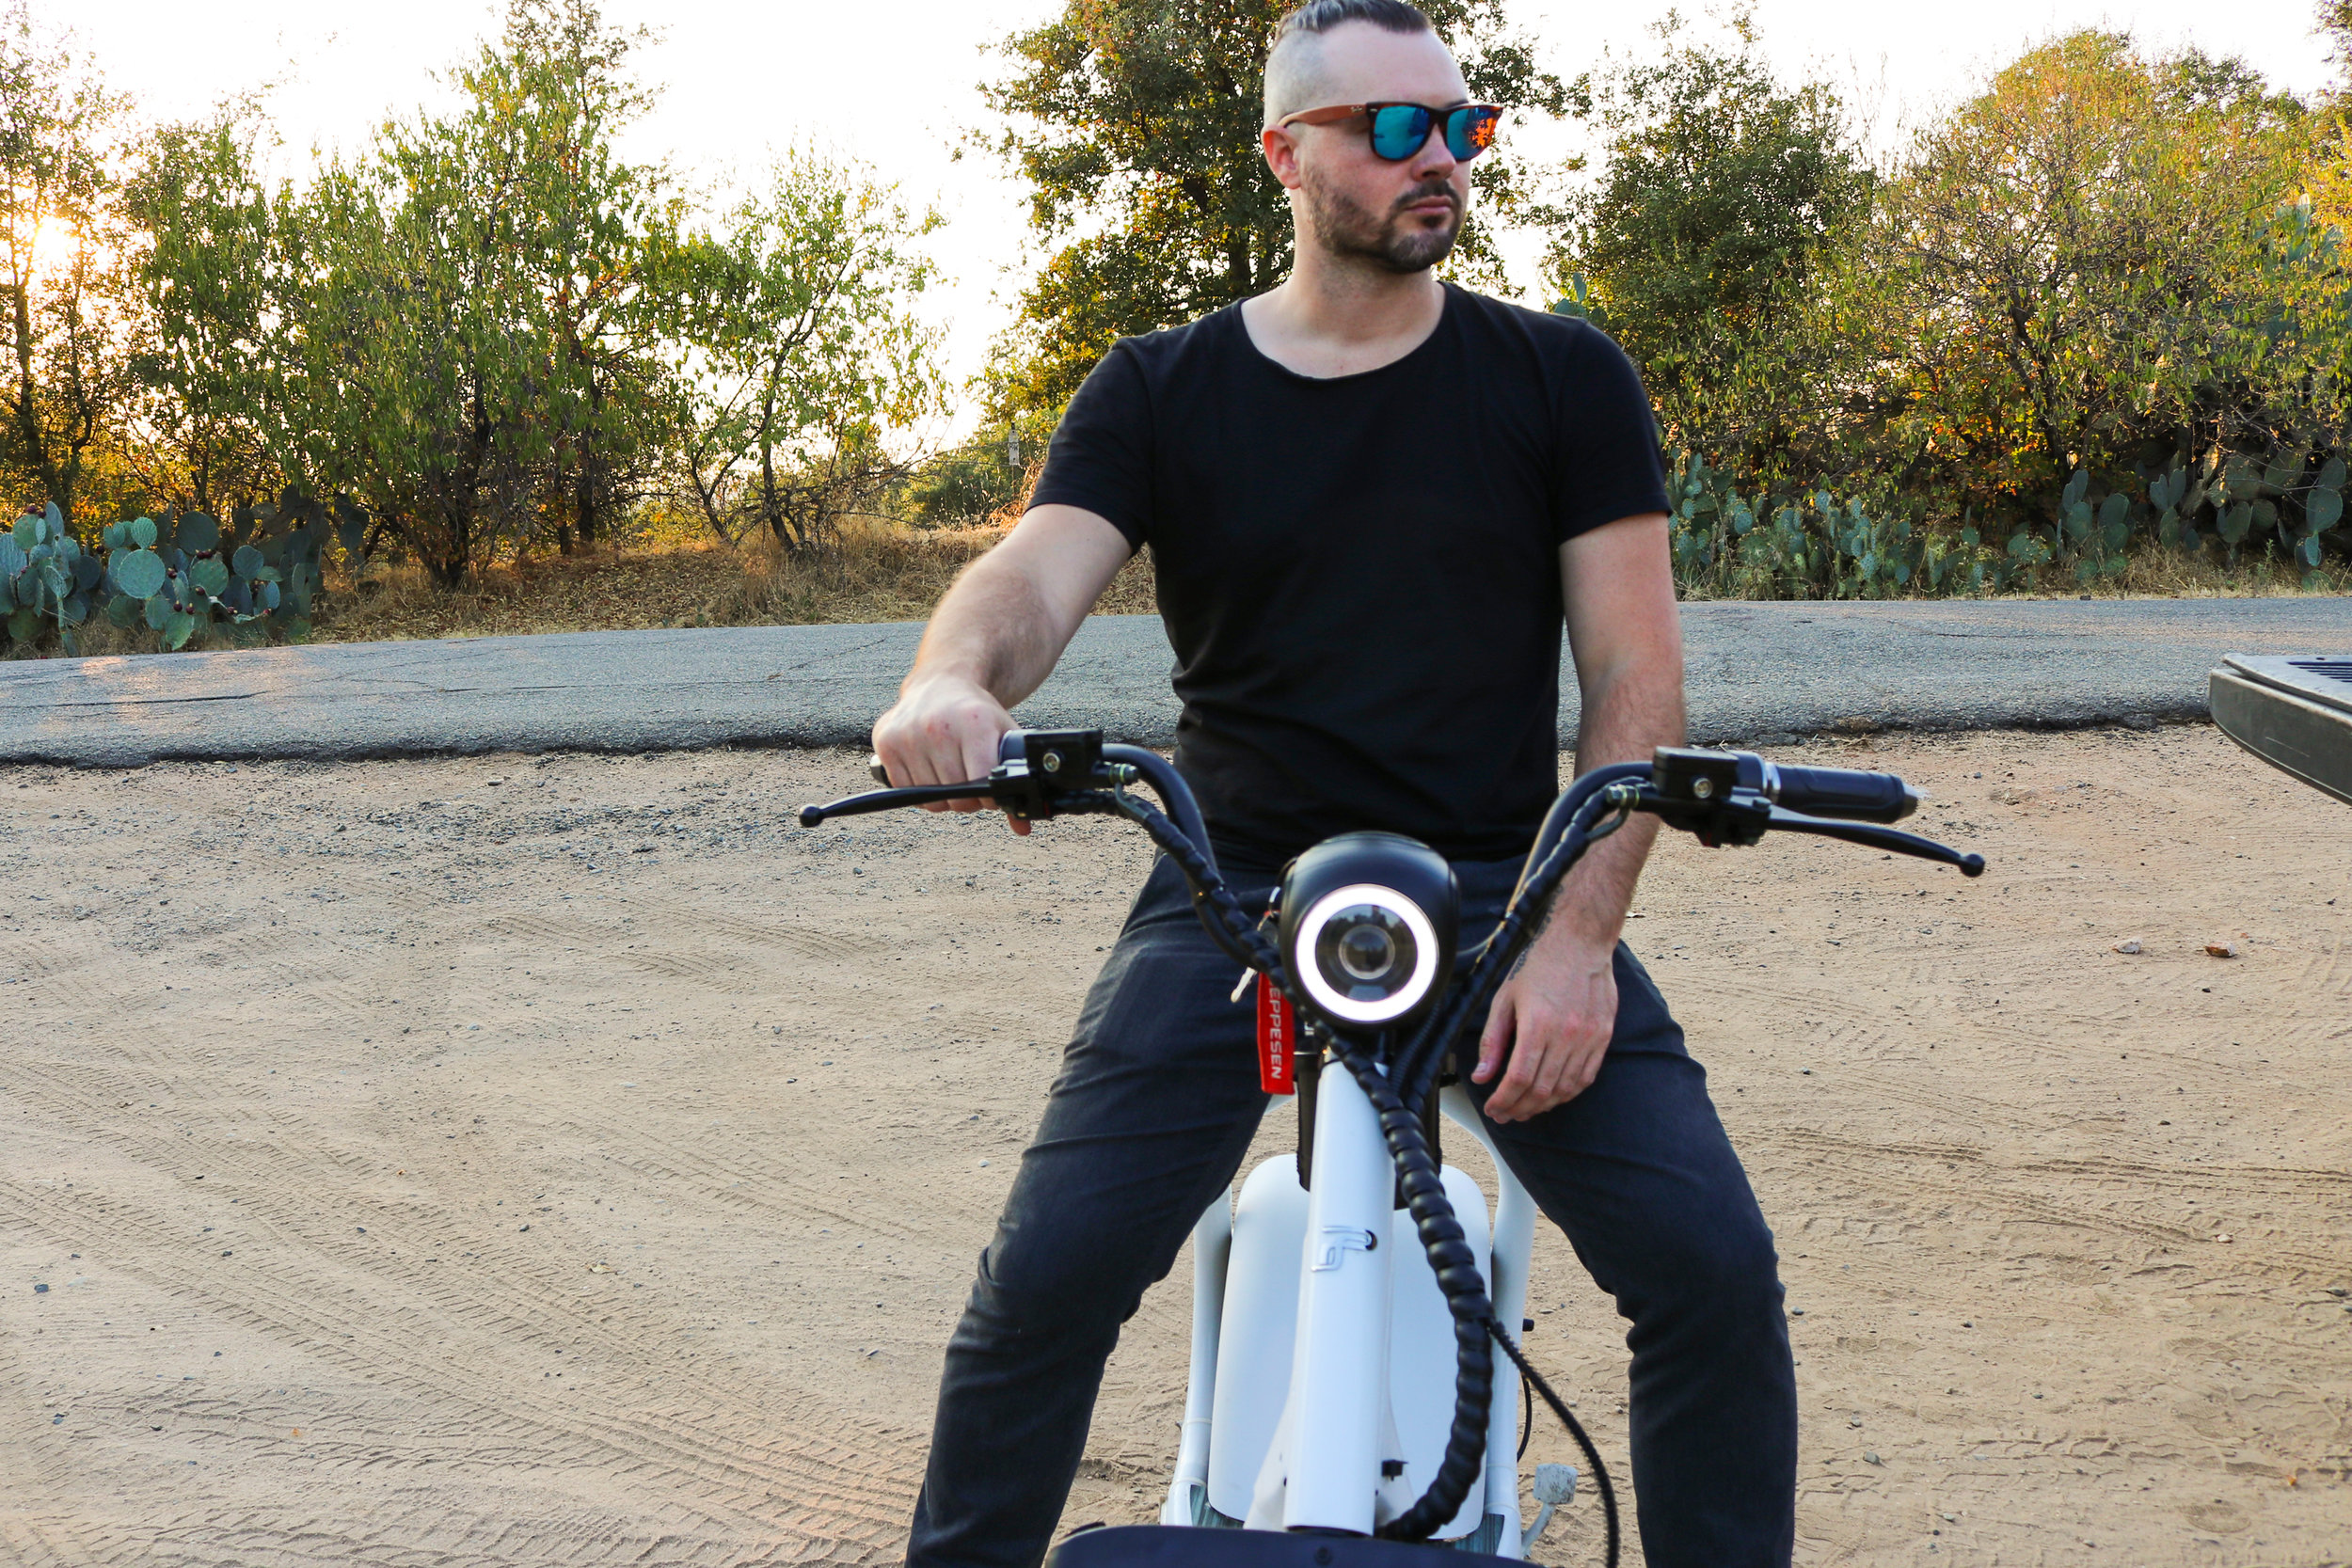 electrified-reviews-phat-scooter-sport-electric-scooter-review-headlight.jpg